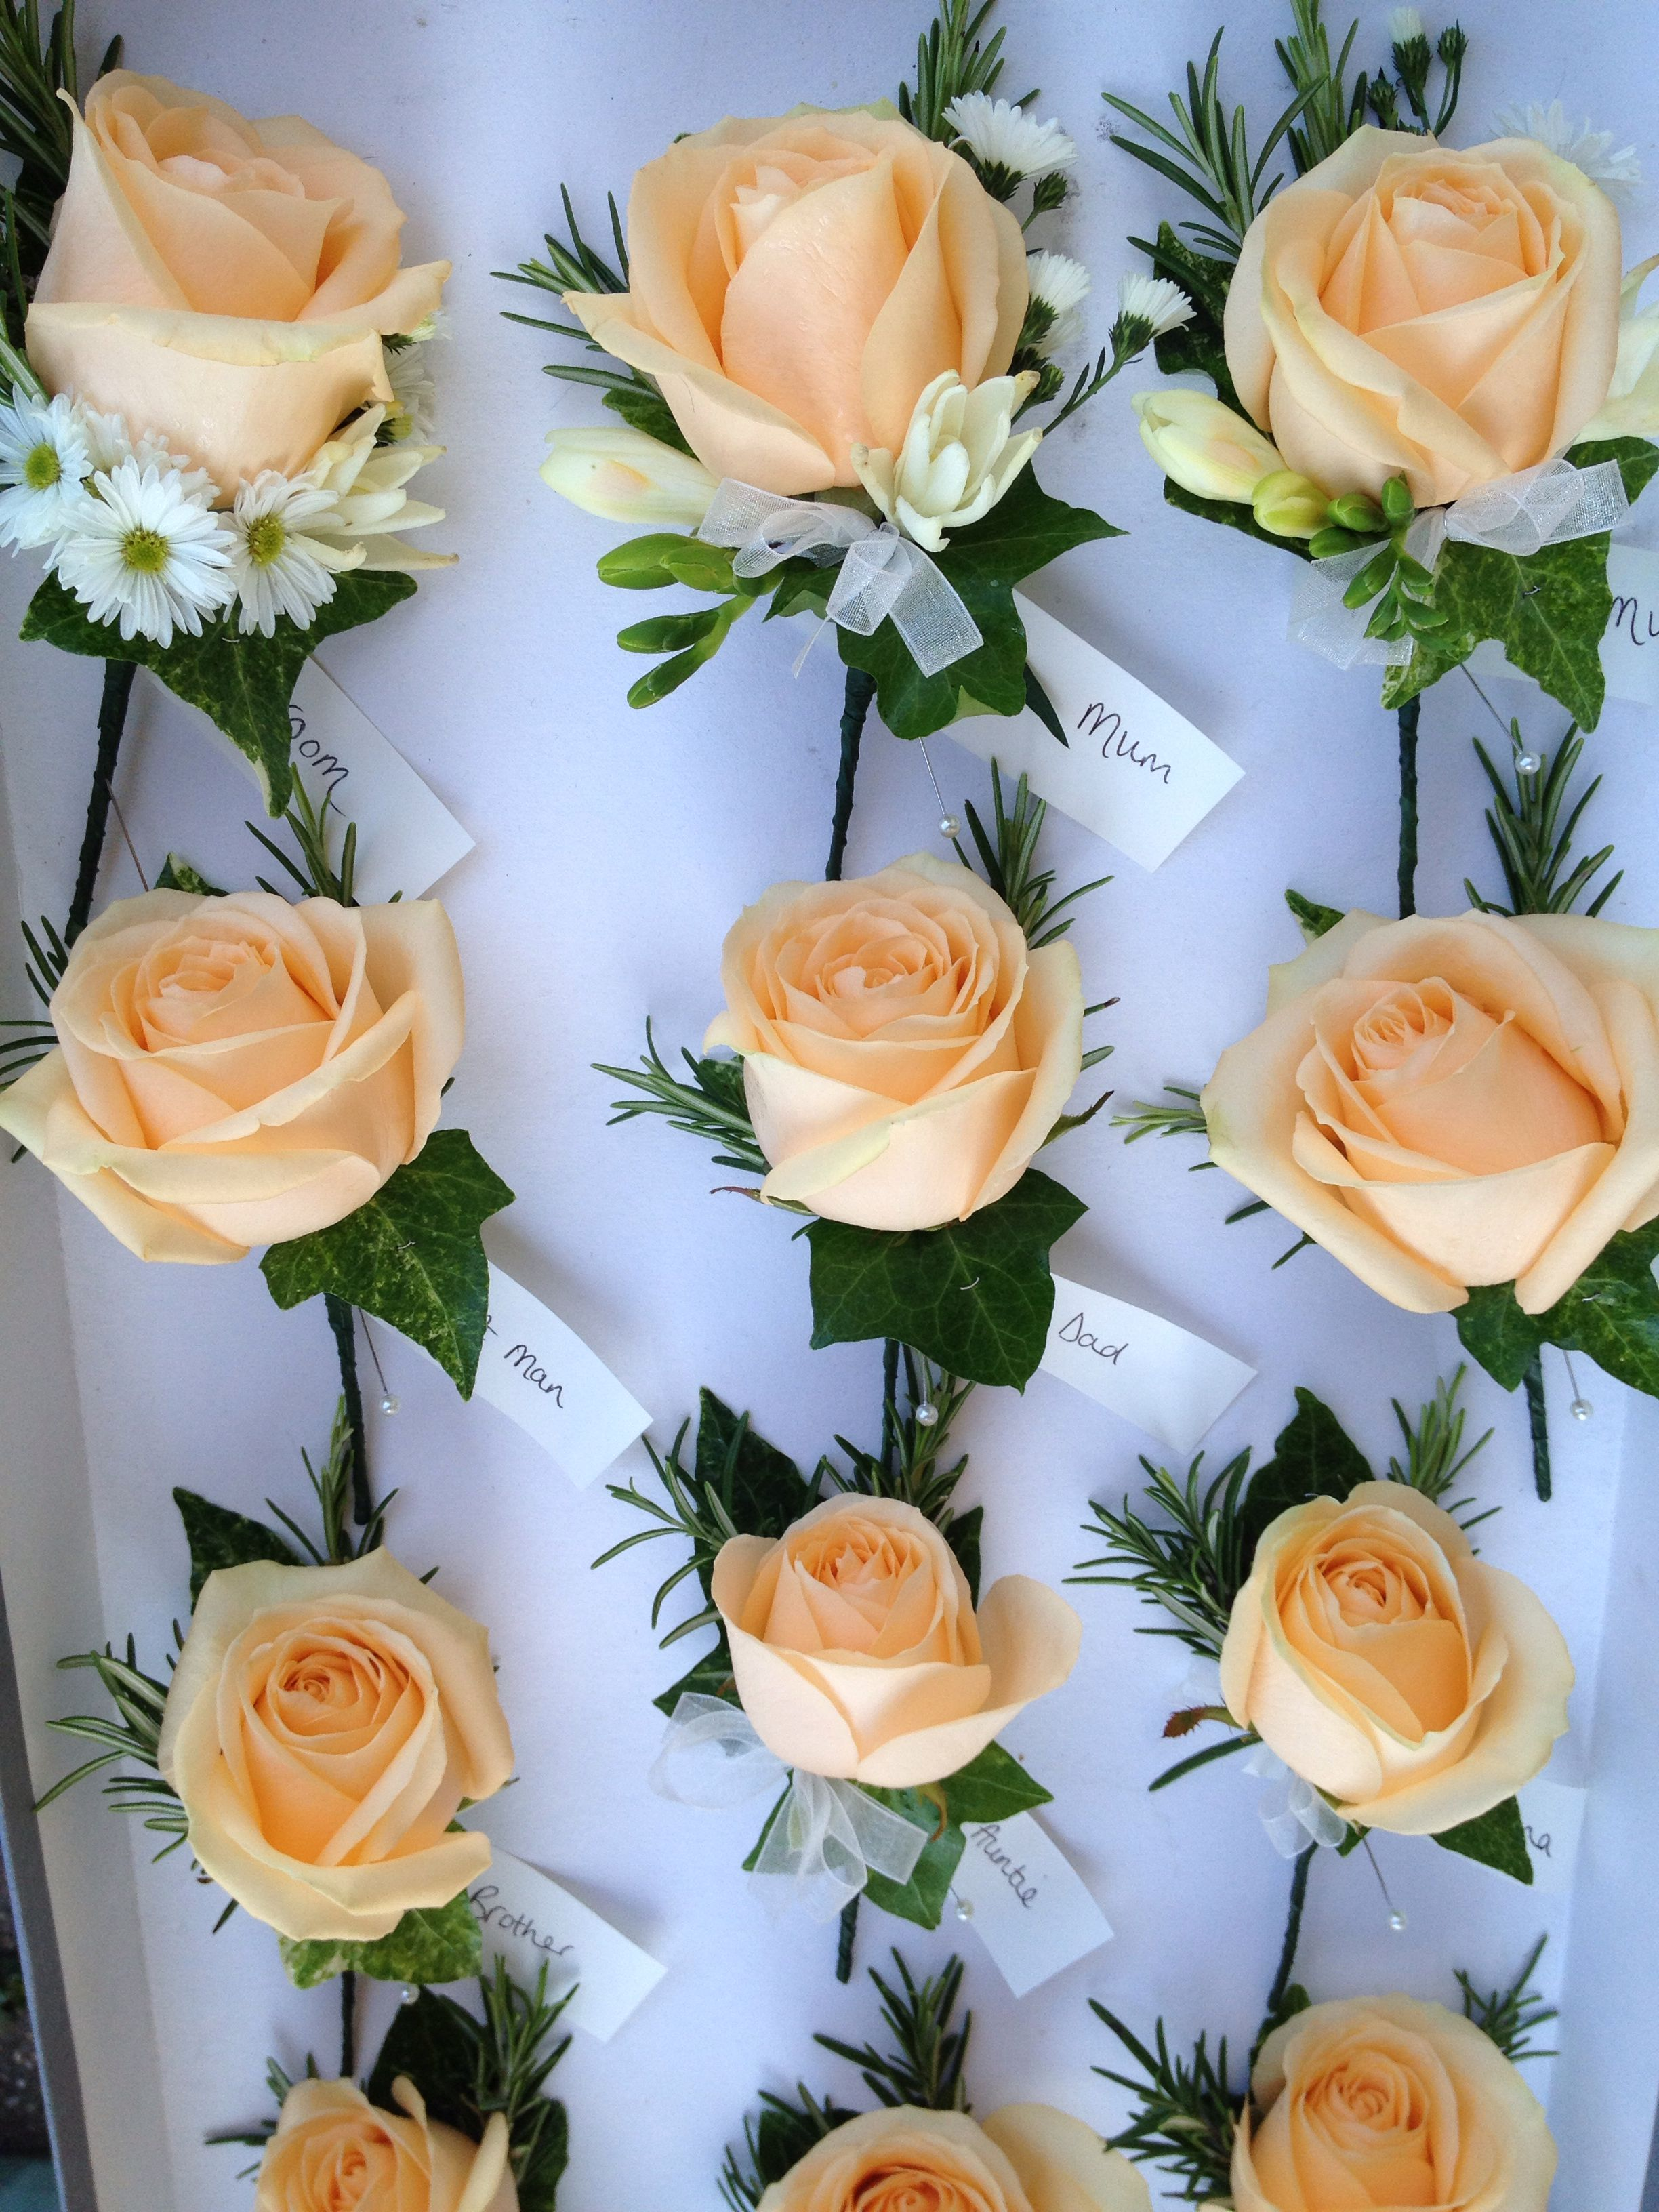 pretty peach avalanche rose buttonholes with a little bit of